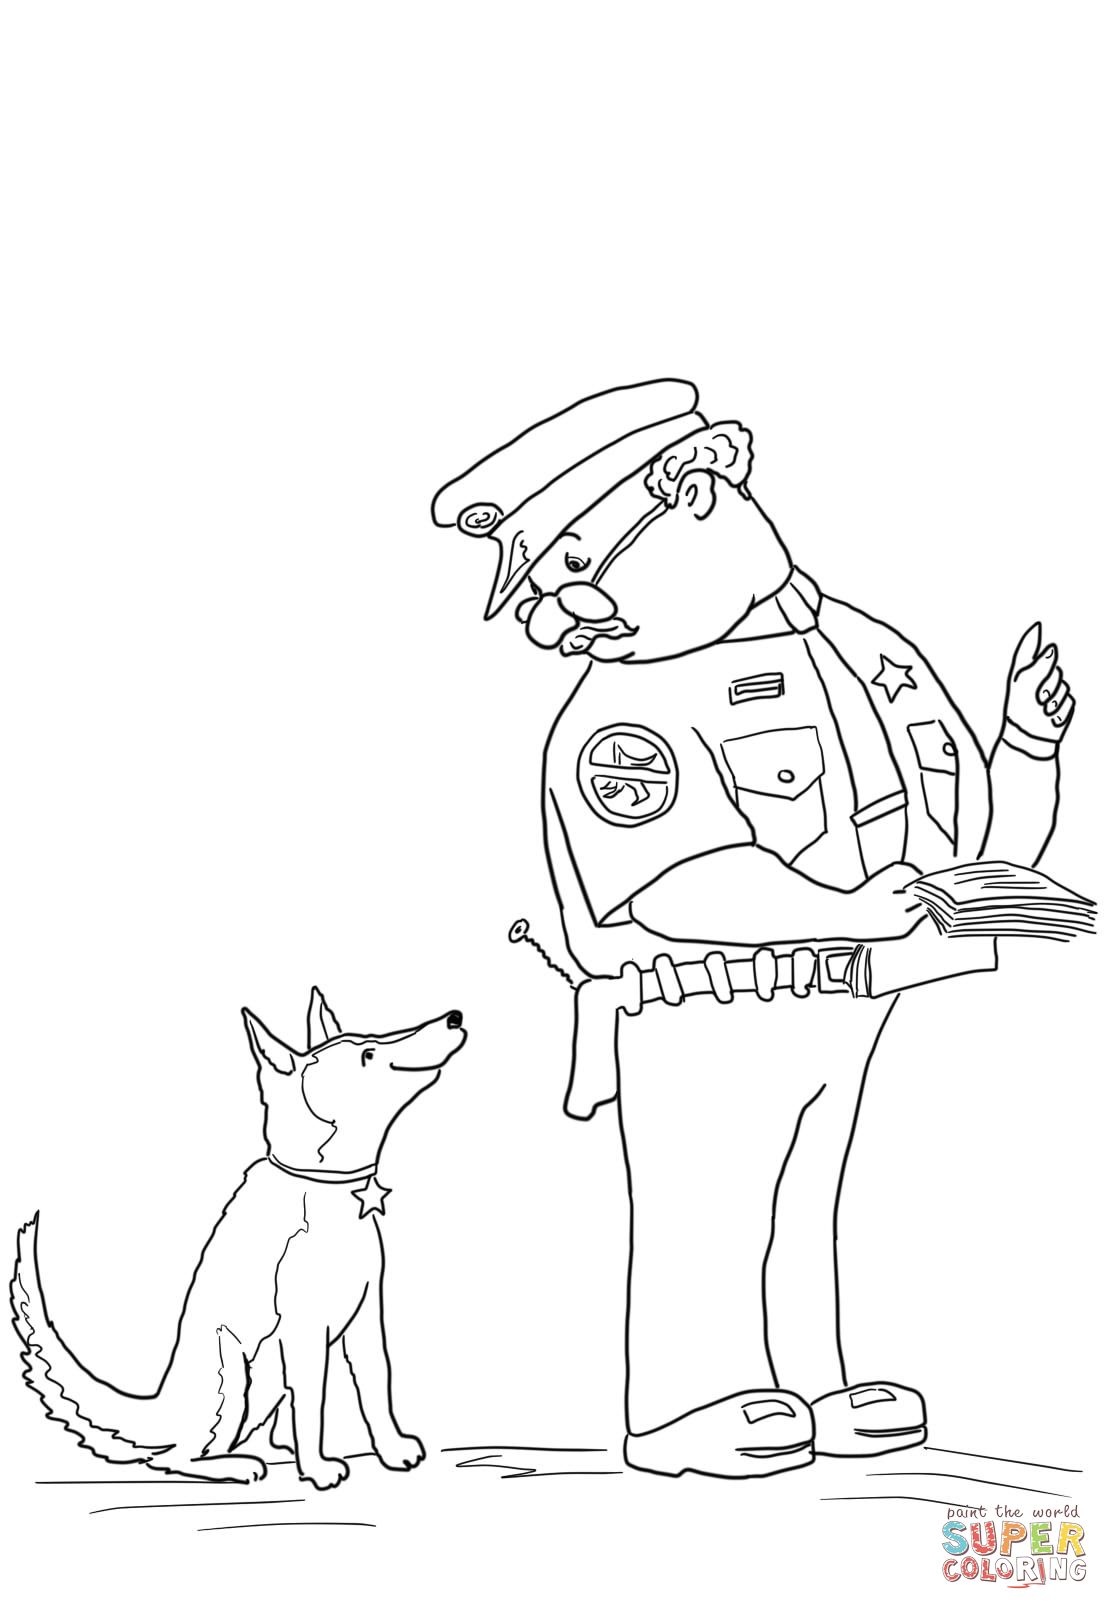 officer buckle and gloria printables officer buckle and gloria taking a bow coloring page officer printables buckle gloria and